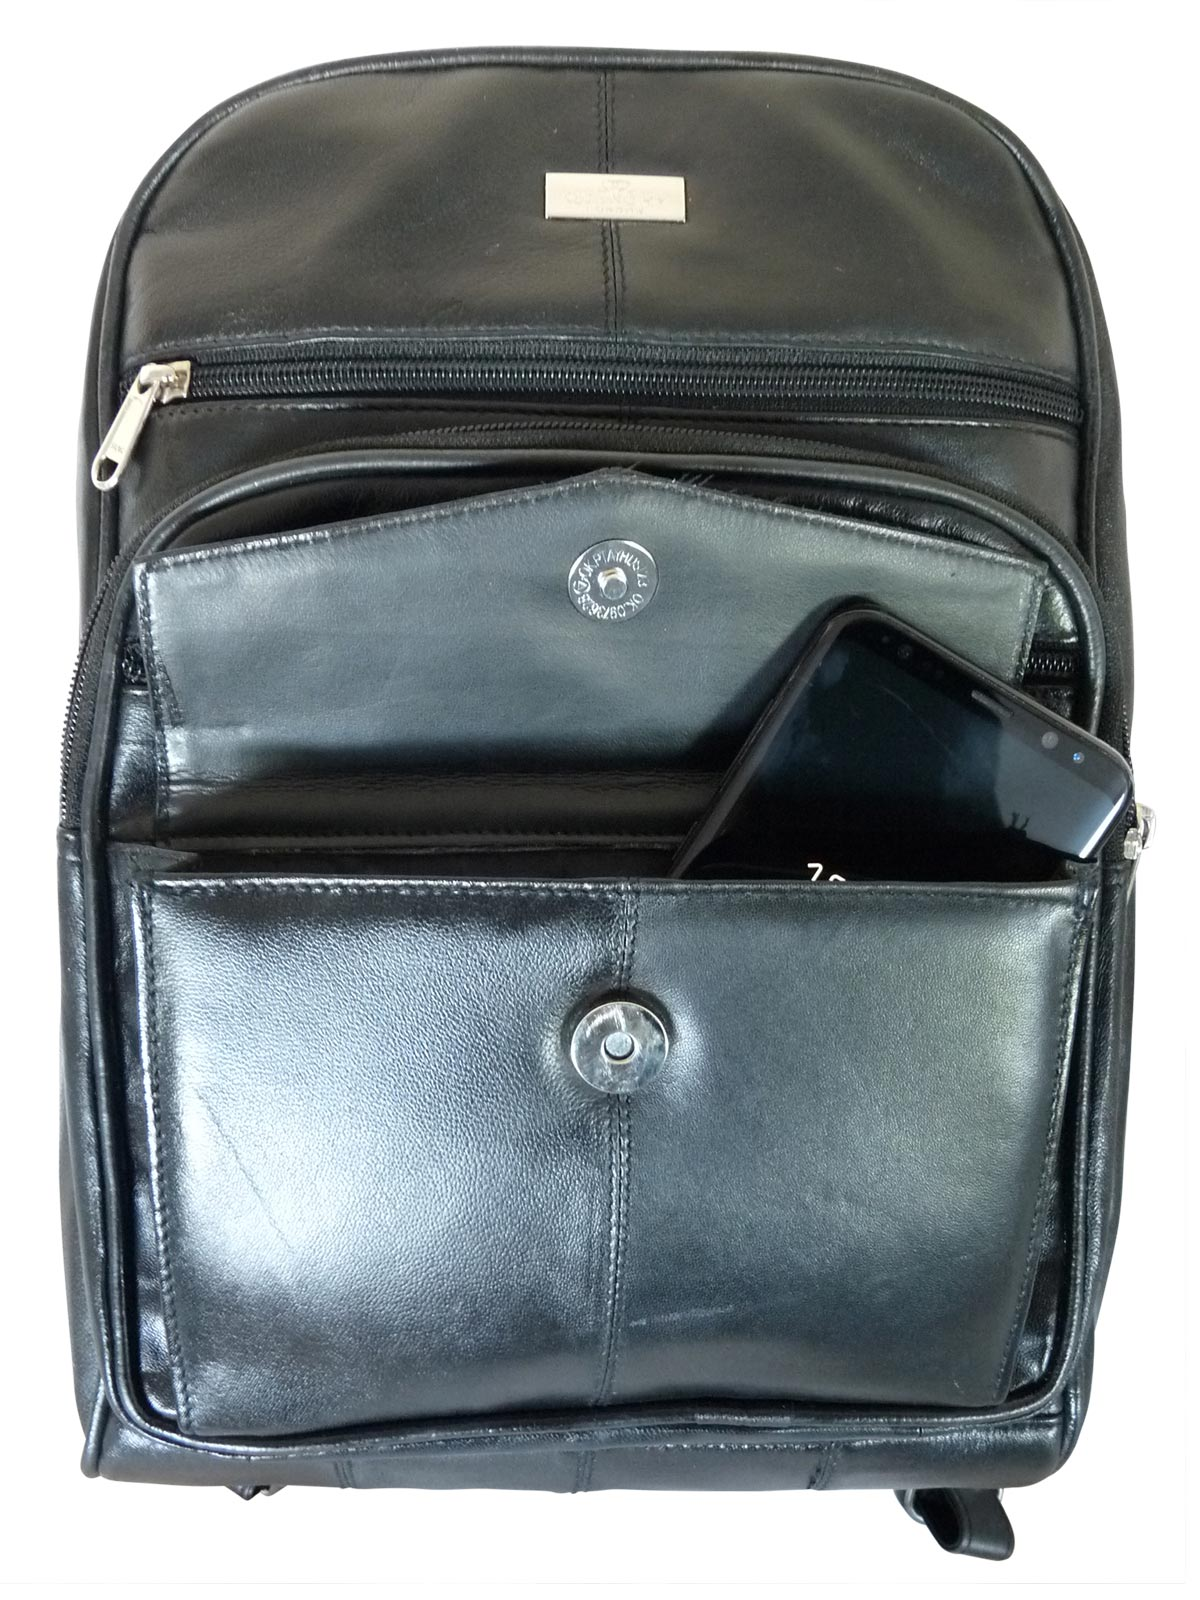 Womens Real leather bagpack handbag QL192Ks